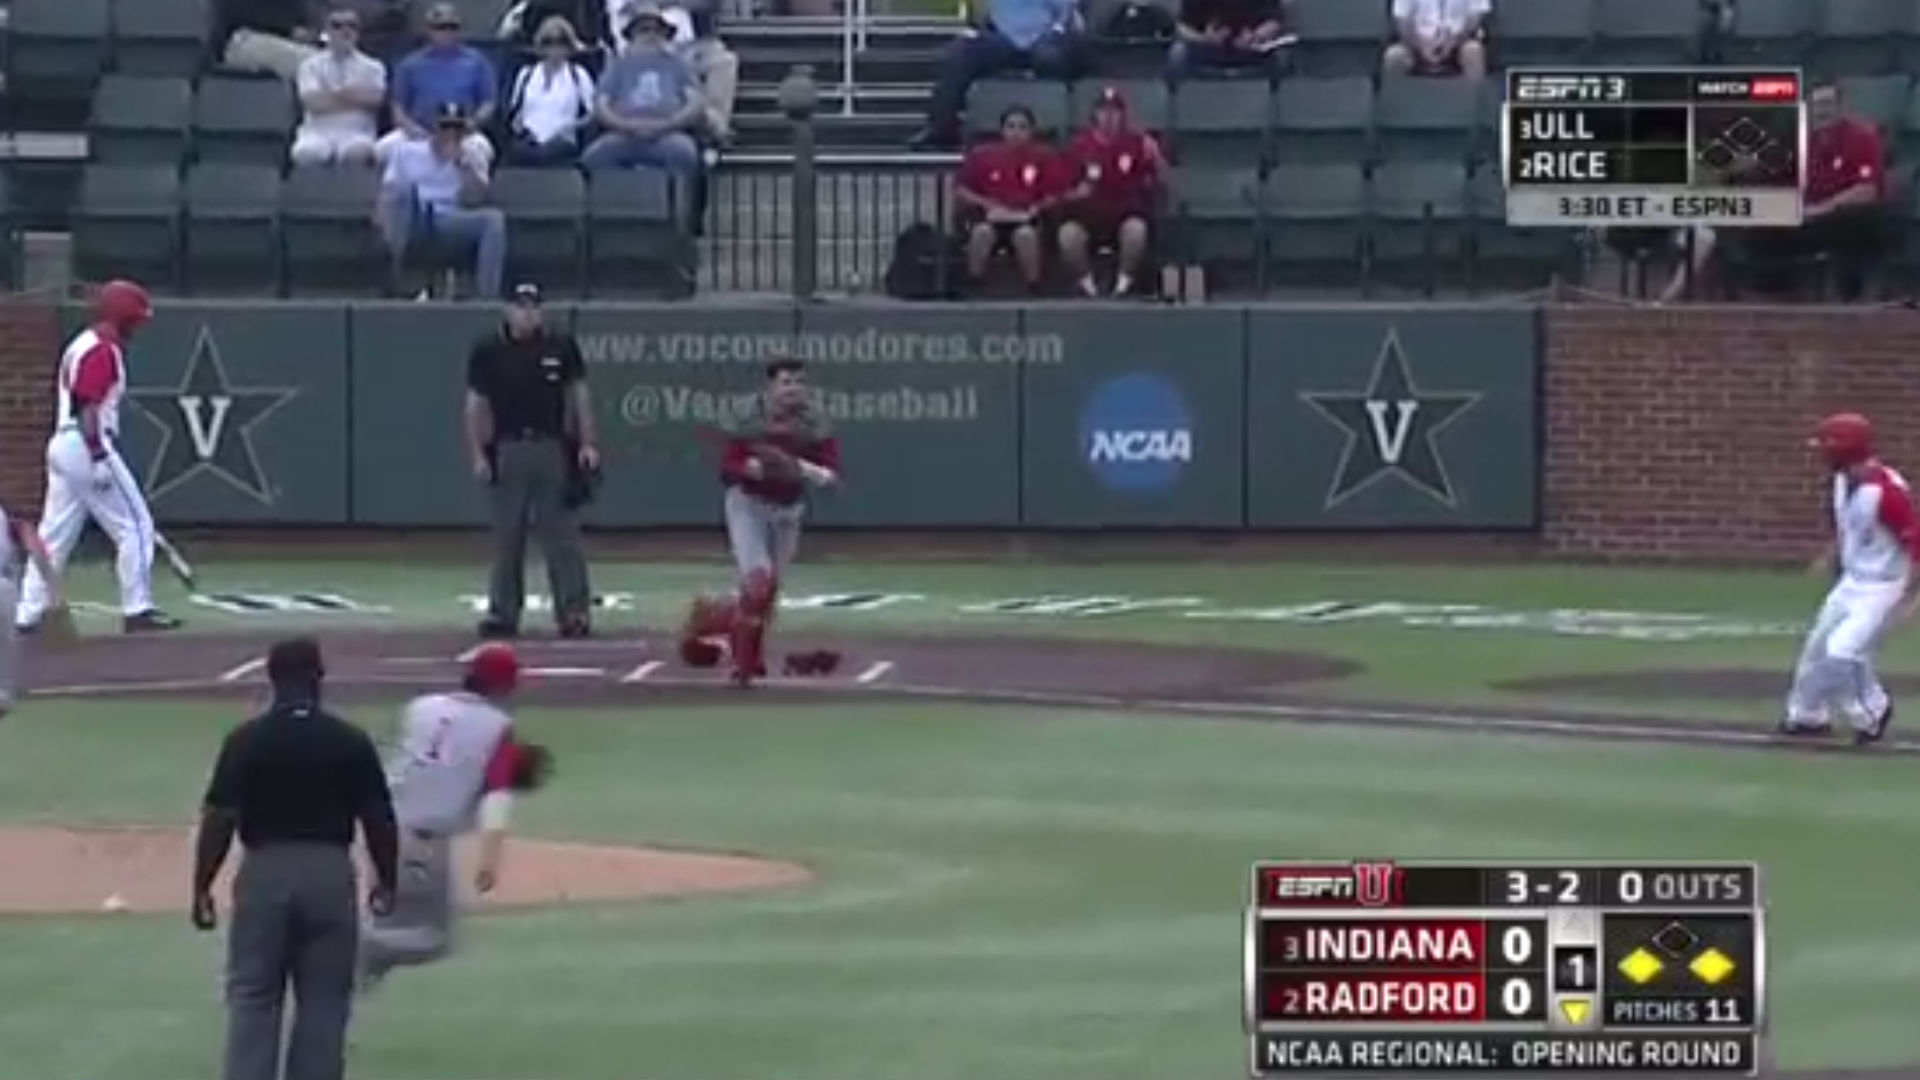 Indiana pulls off crazy 1-2-6-2 triple play against Radford